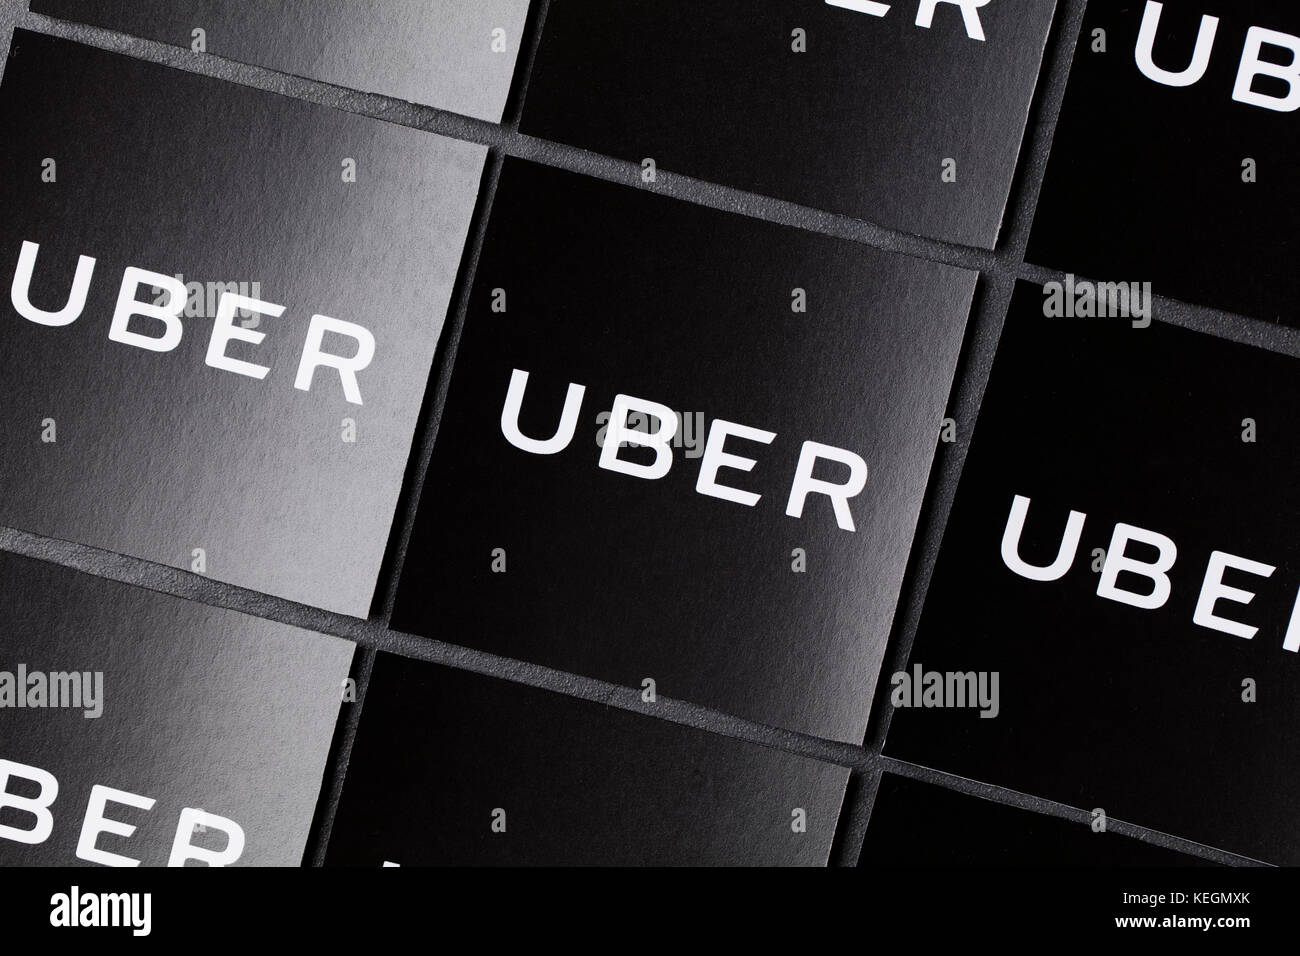 A photograph of  the Uber logo. Uber is a popular taxi style transport service application, founded in 2009 - Stock Image